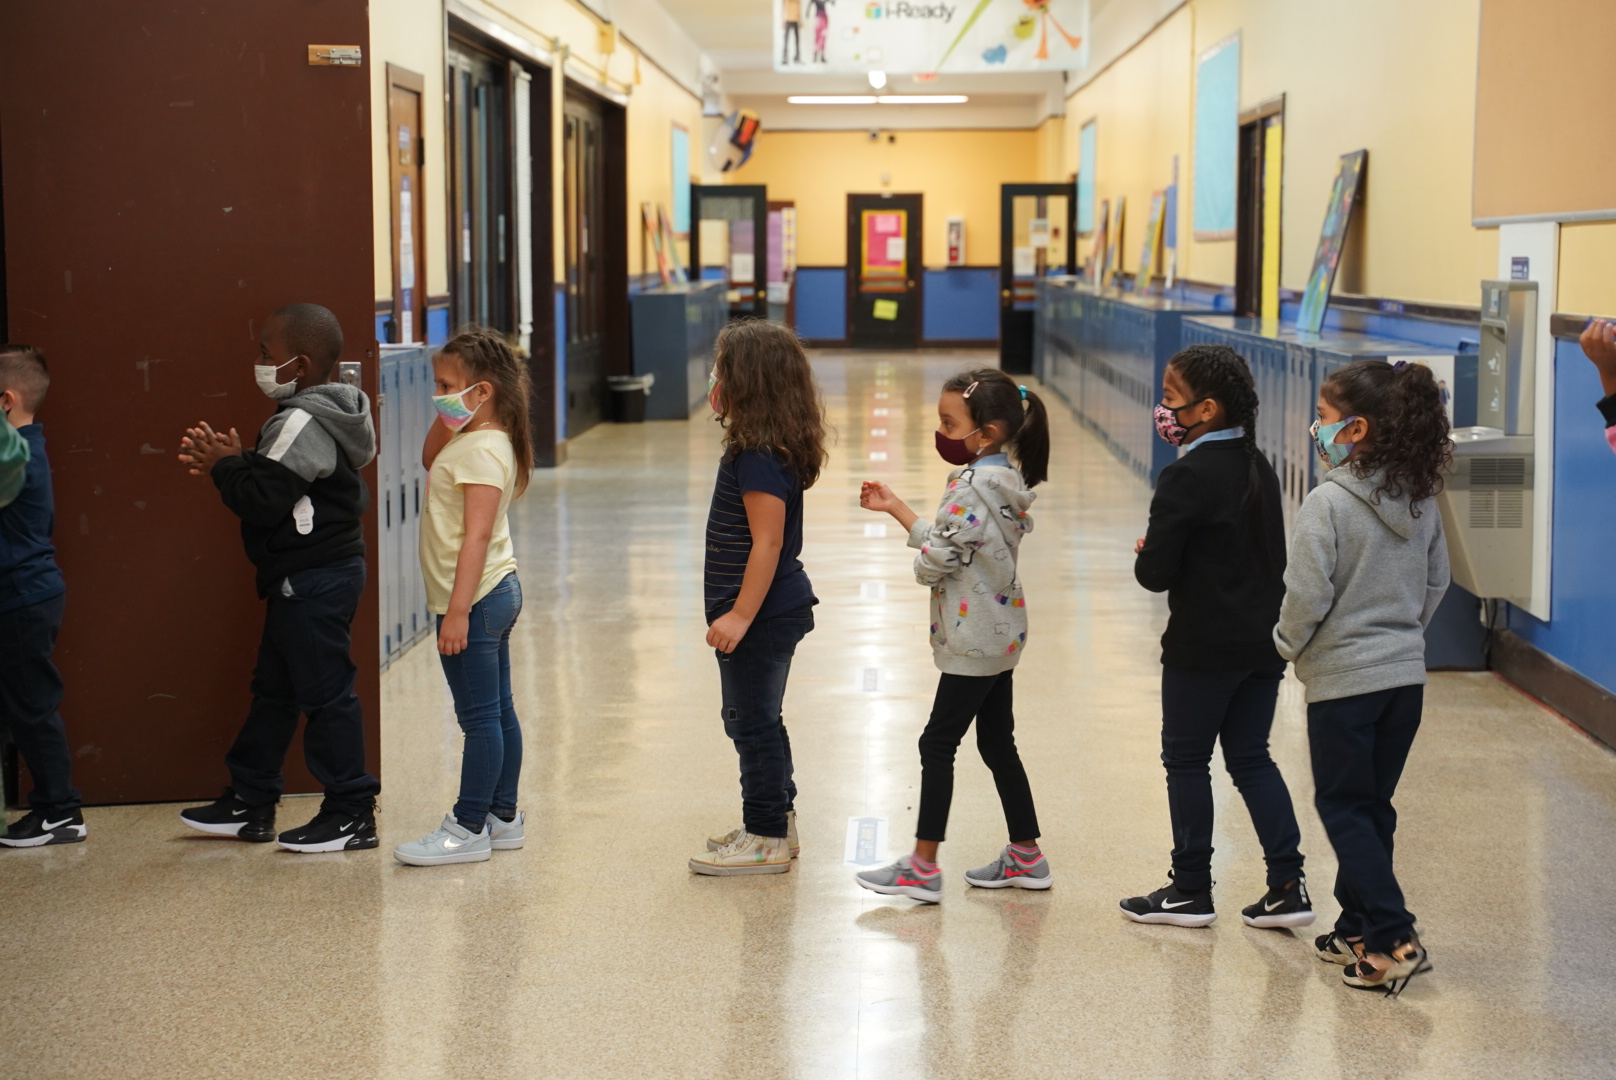 Students at a Detroit elementary school line up as they walk through the hallways.